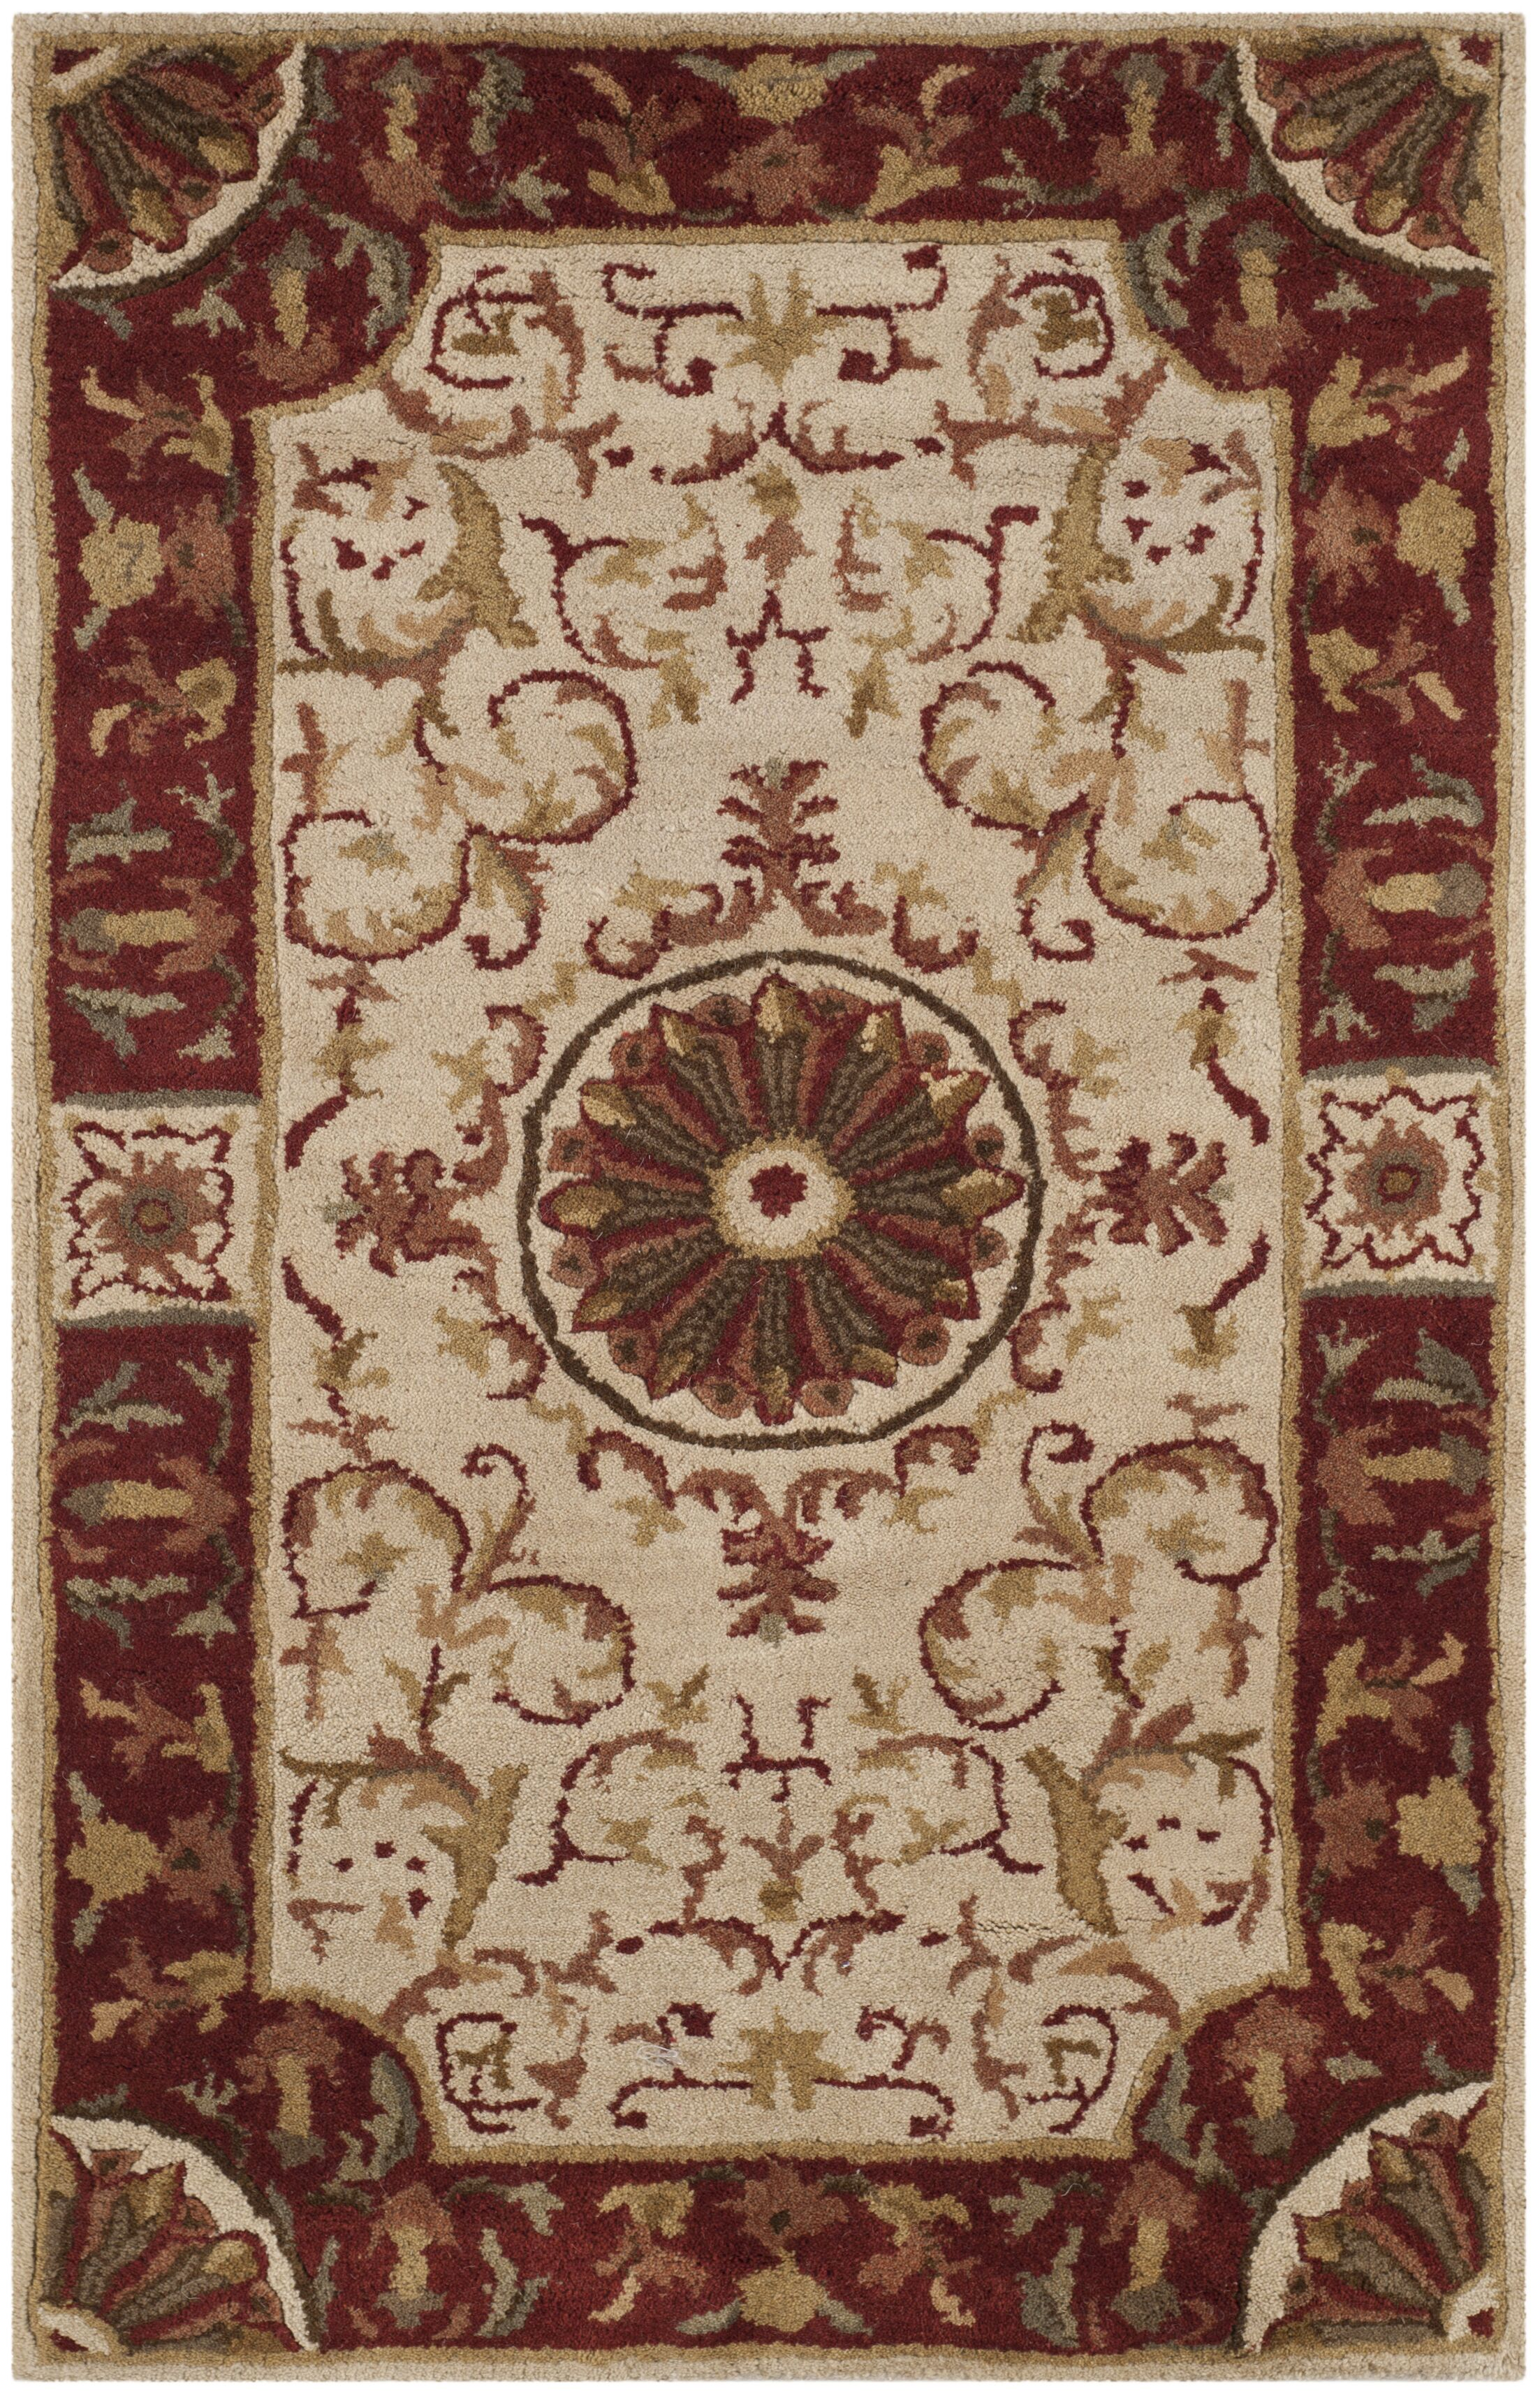 Latarra Hand Tufted Wool Ivory Area Rug Rug Size: Rectangle 2'6